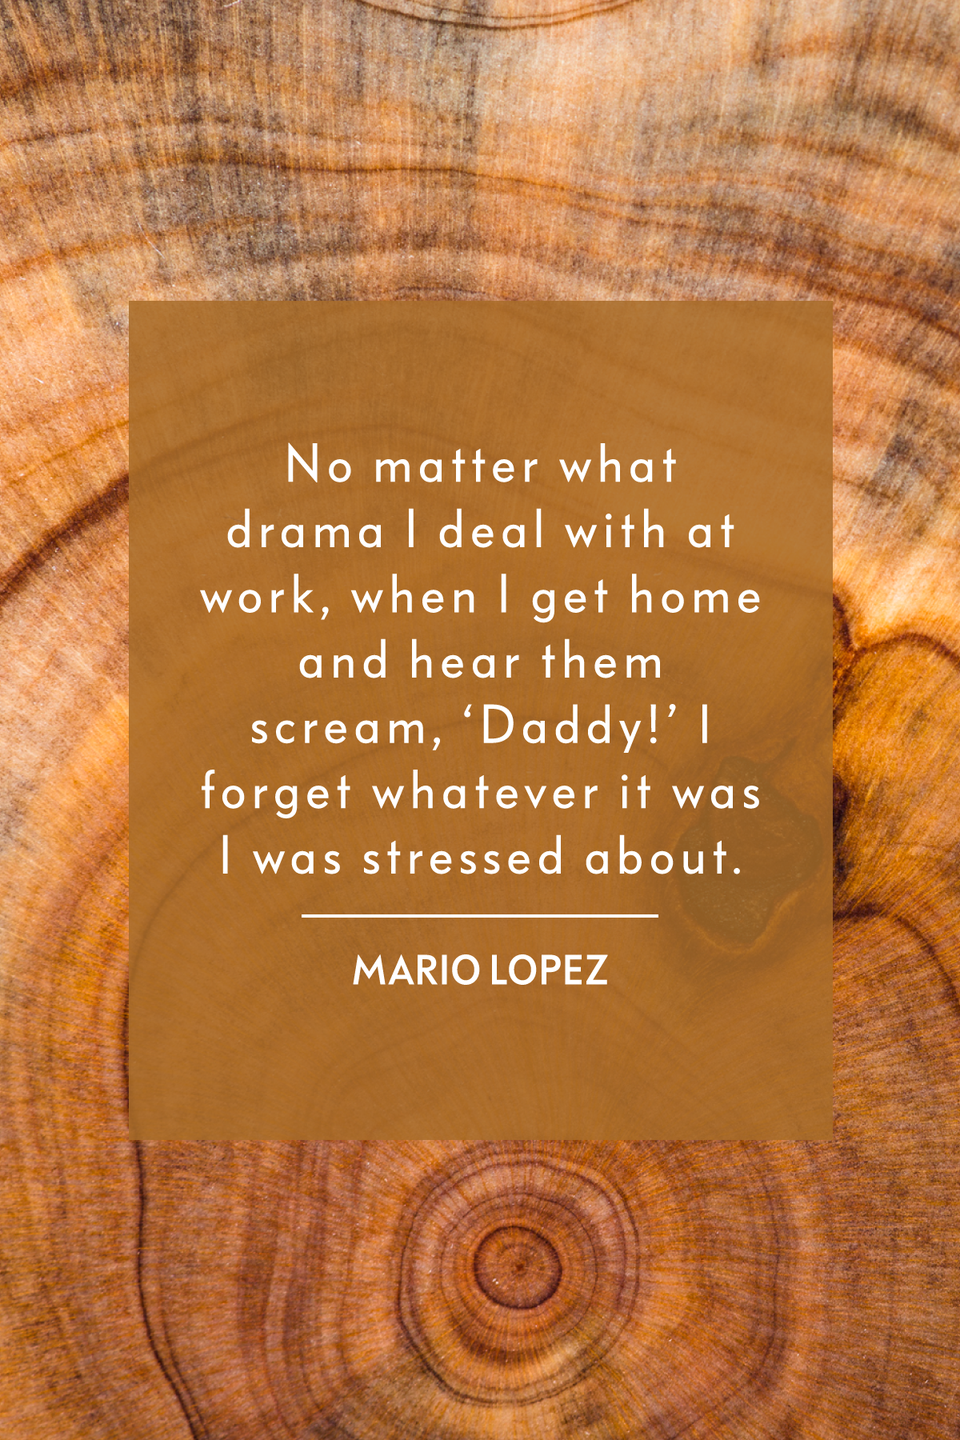 """<p>""""No matter what drama I deal with at work, when I get home and hear them scream, 'Daddy!' I forget whatever it was I was stressed about,"""" the host of <em>Extra</em> told <em><a href=""""https://people.com/parents/mario-lopez-fatherhood-summer-schedule-miami-beach-bonefish-grill/"""" rel=""""nofollow noopener"""" target=""""_blank"""" data-ylk=""""slk:People"""" class=""""link rapid-noclick-resp"""">People</a></em> in 2014.</p>"""